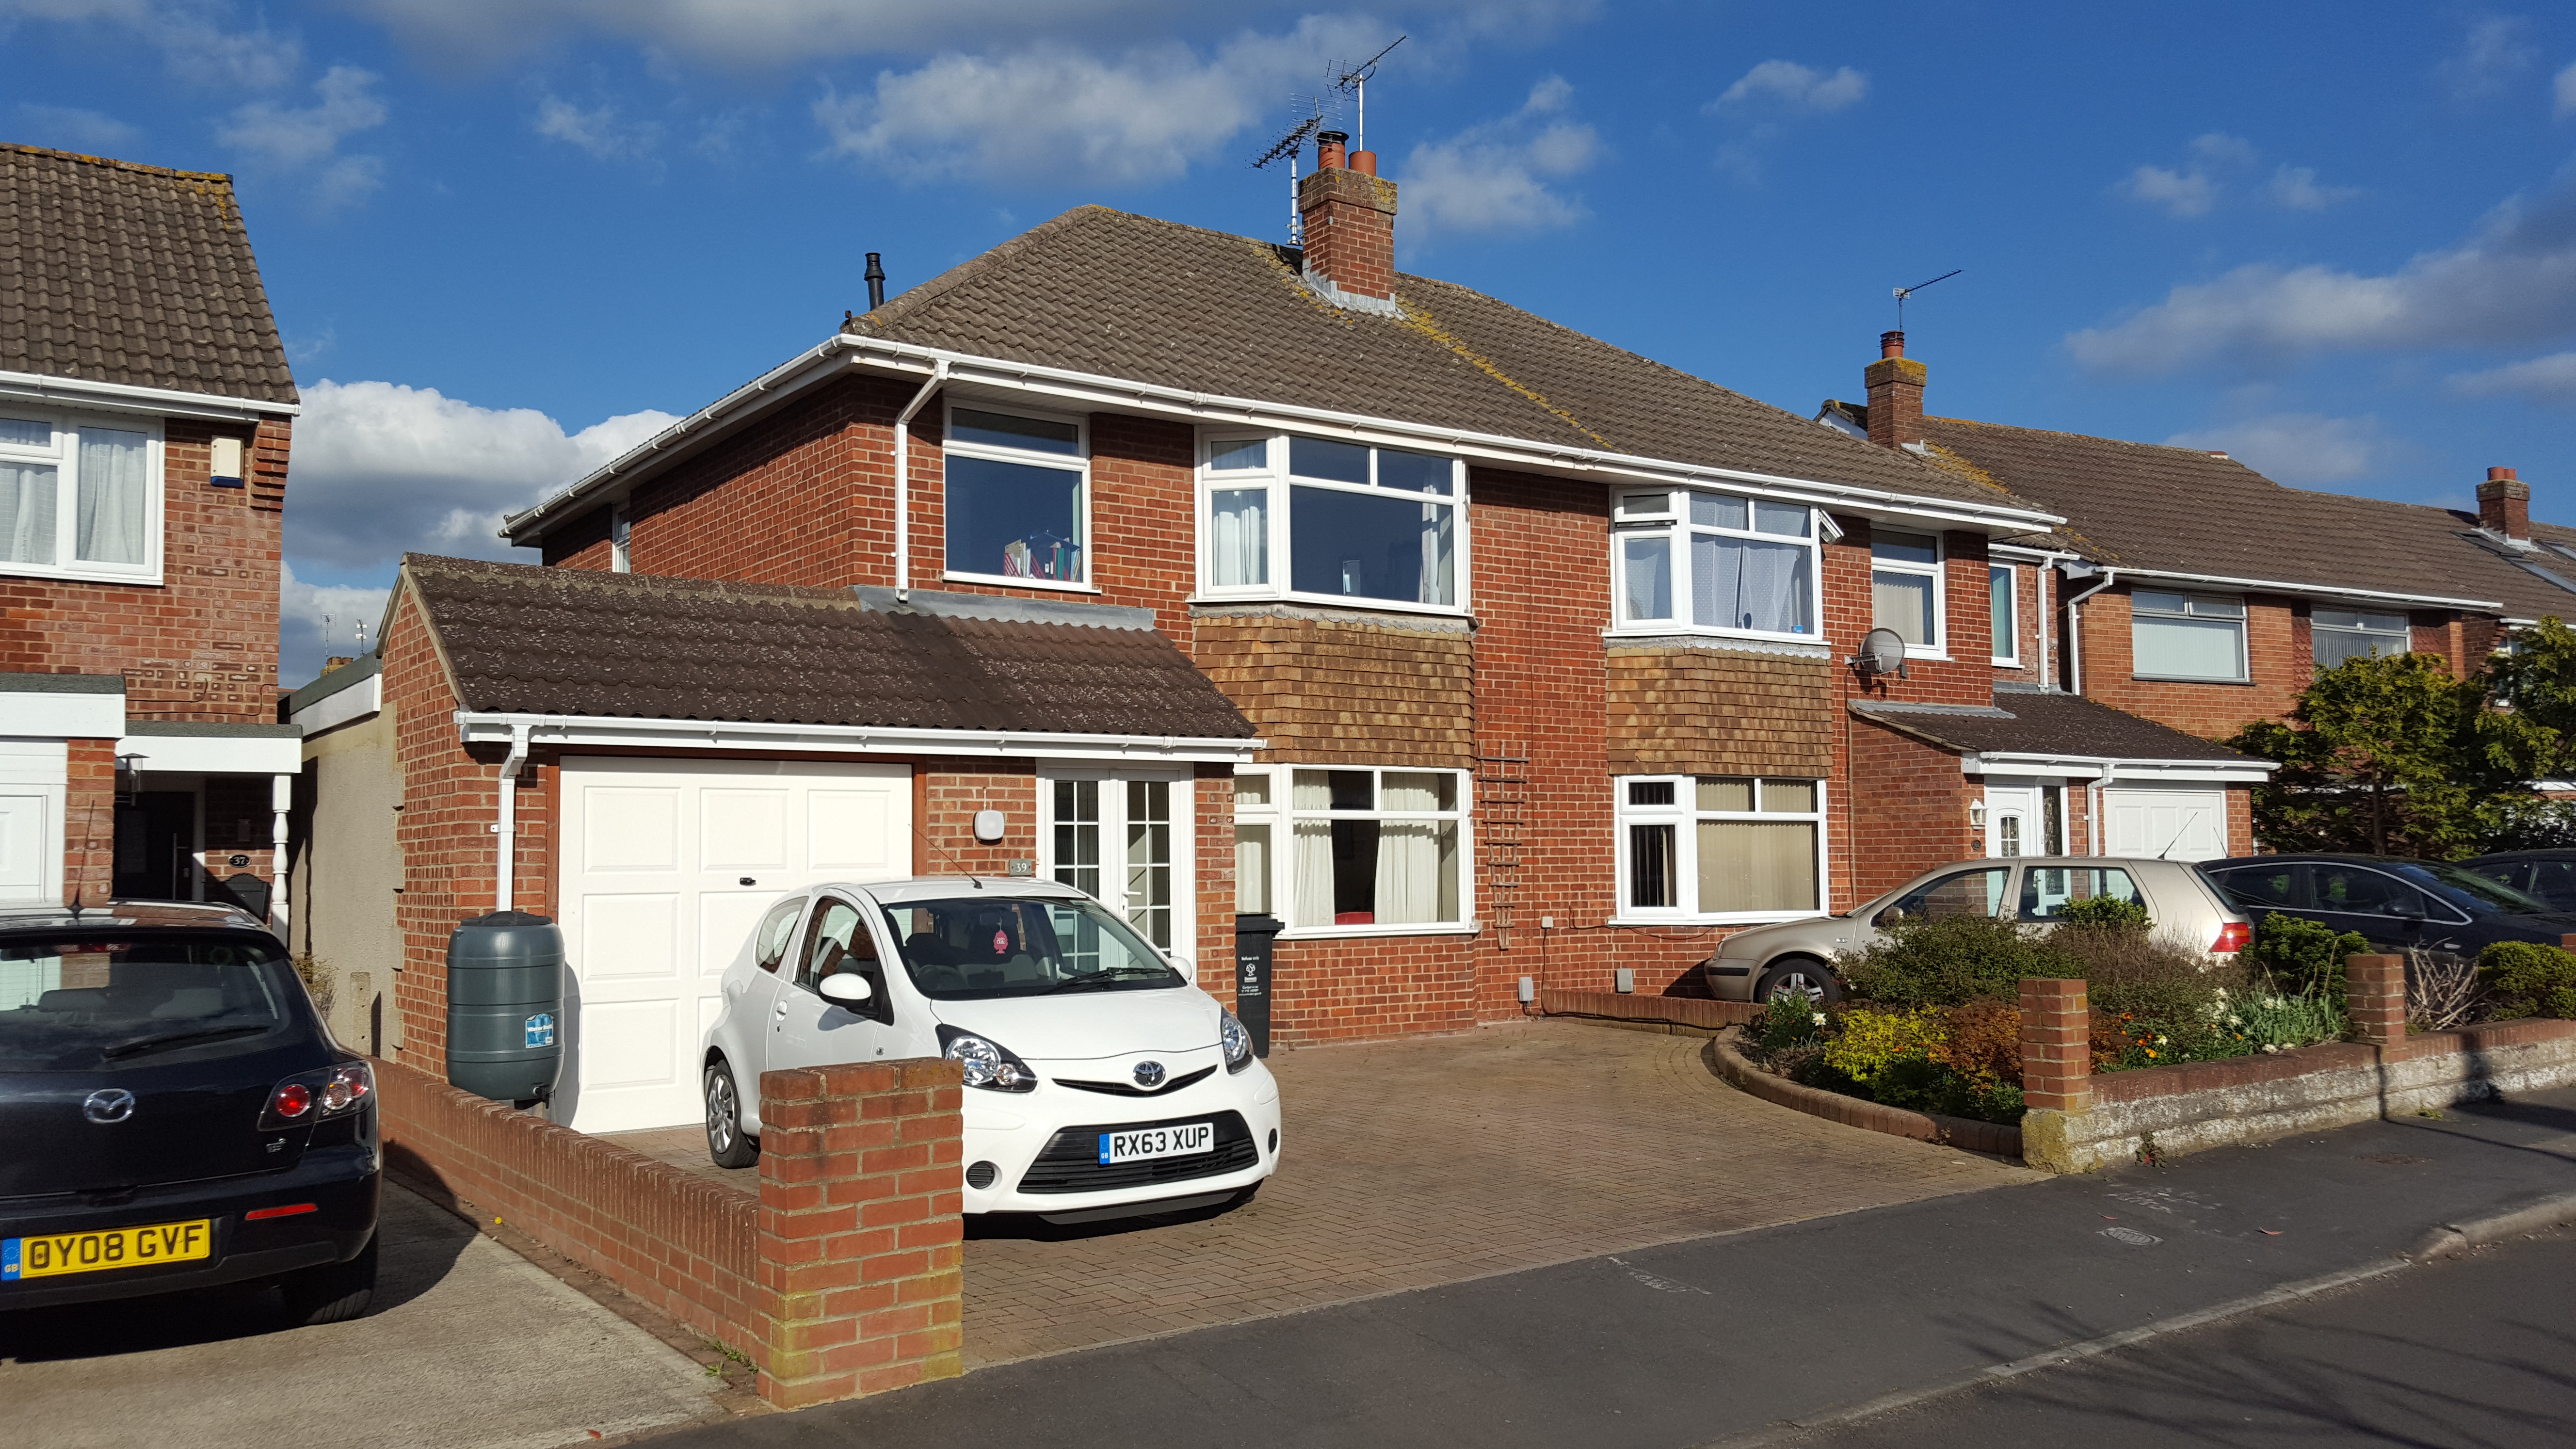 3 bedroom semi detached house stratton swindon sold for Stratton house